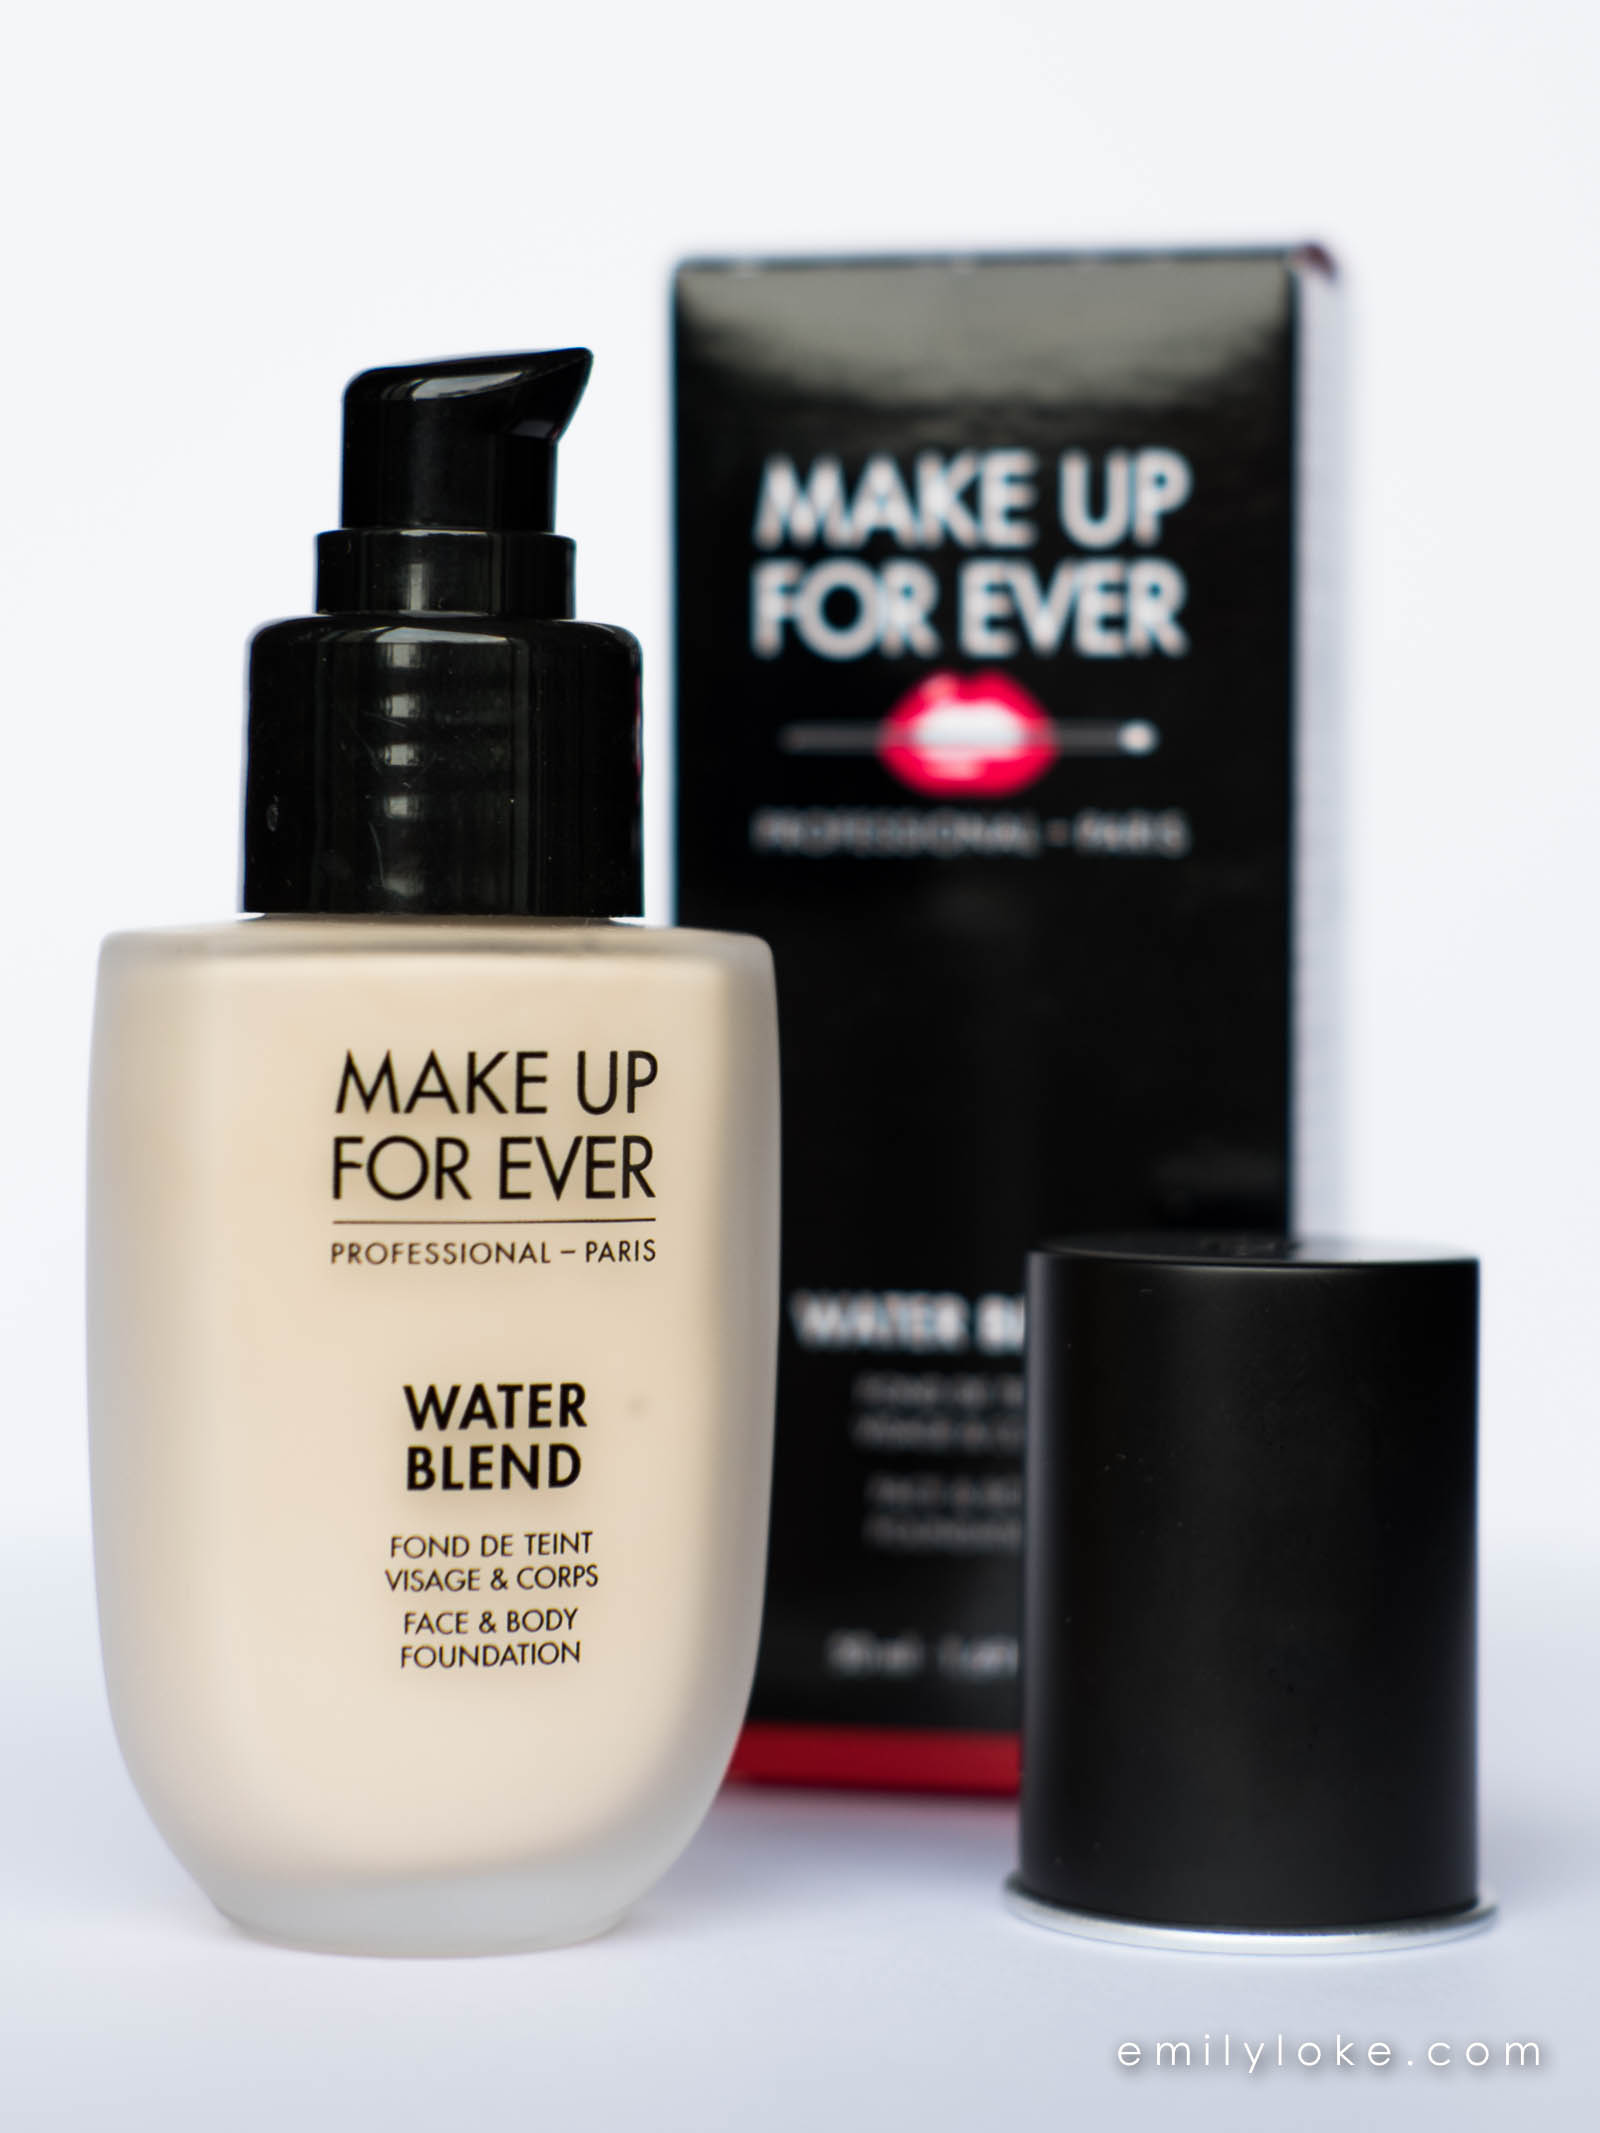 Make Up For Ever Water Blend Foundation Review-4